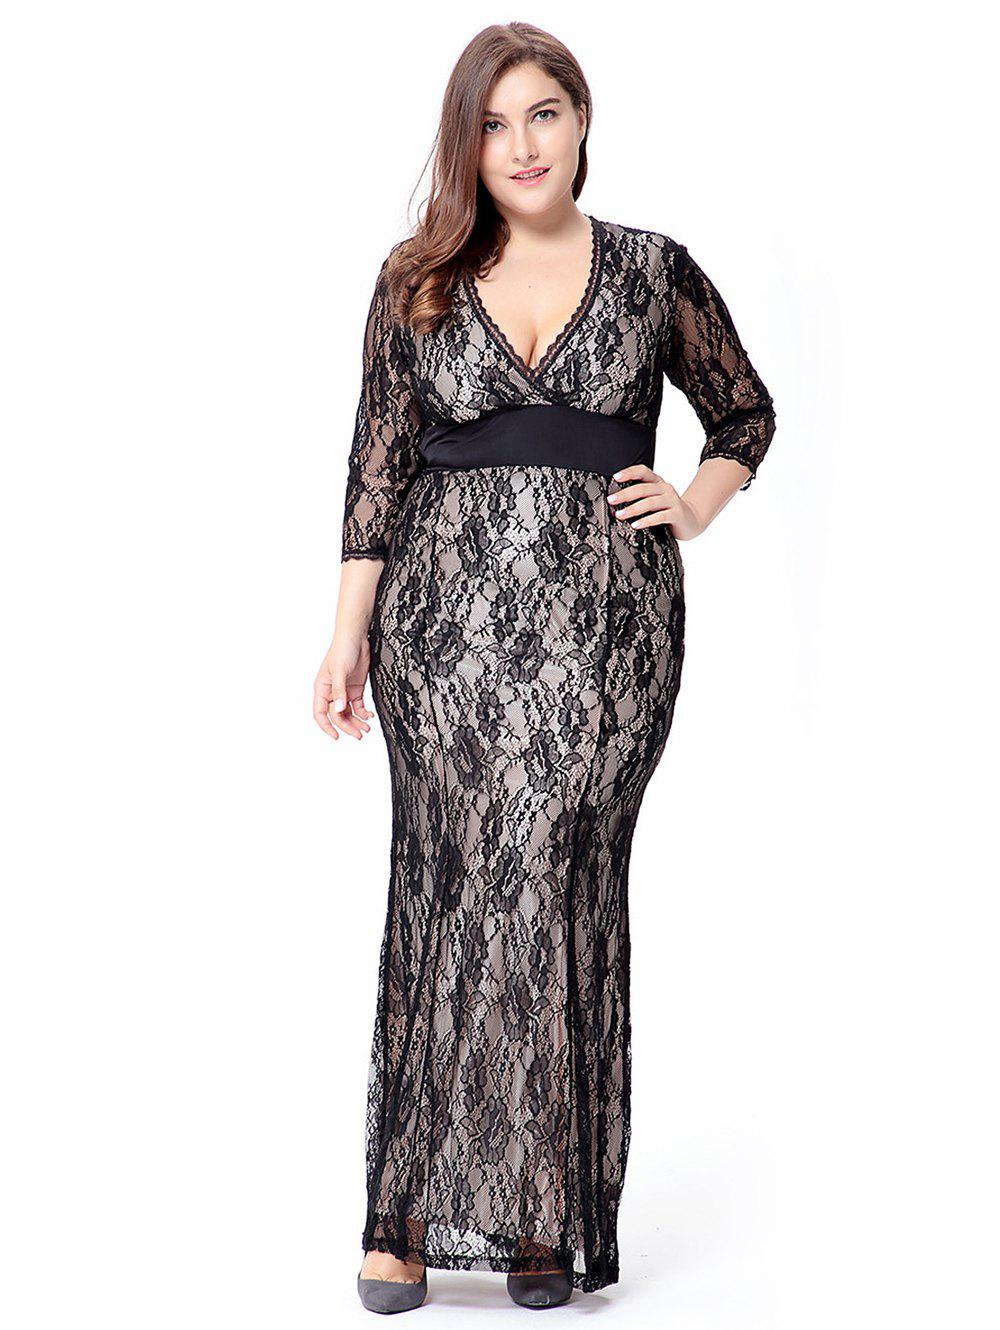 33% OFF] Empire Waist Plus Size Lace Bodycon Dress With SLeeves ...